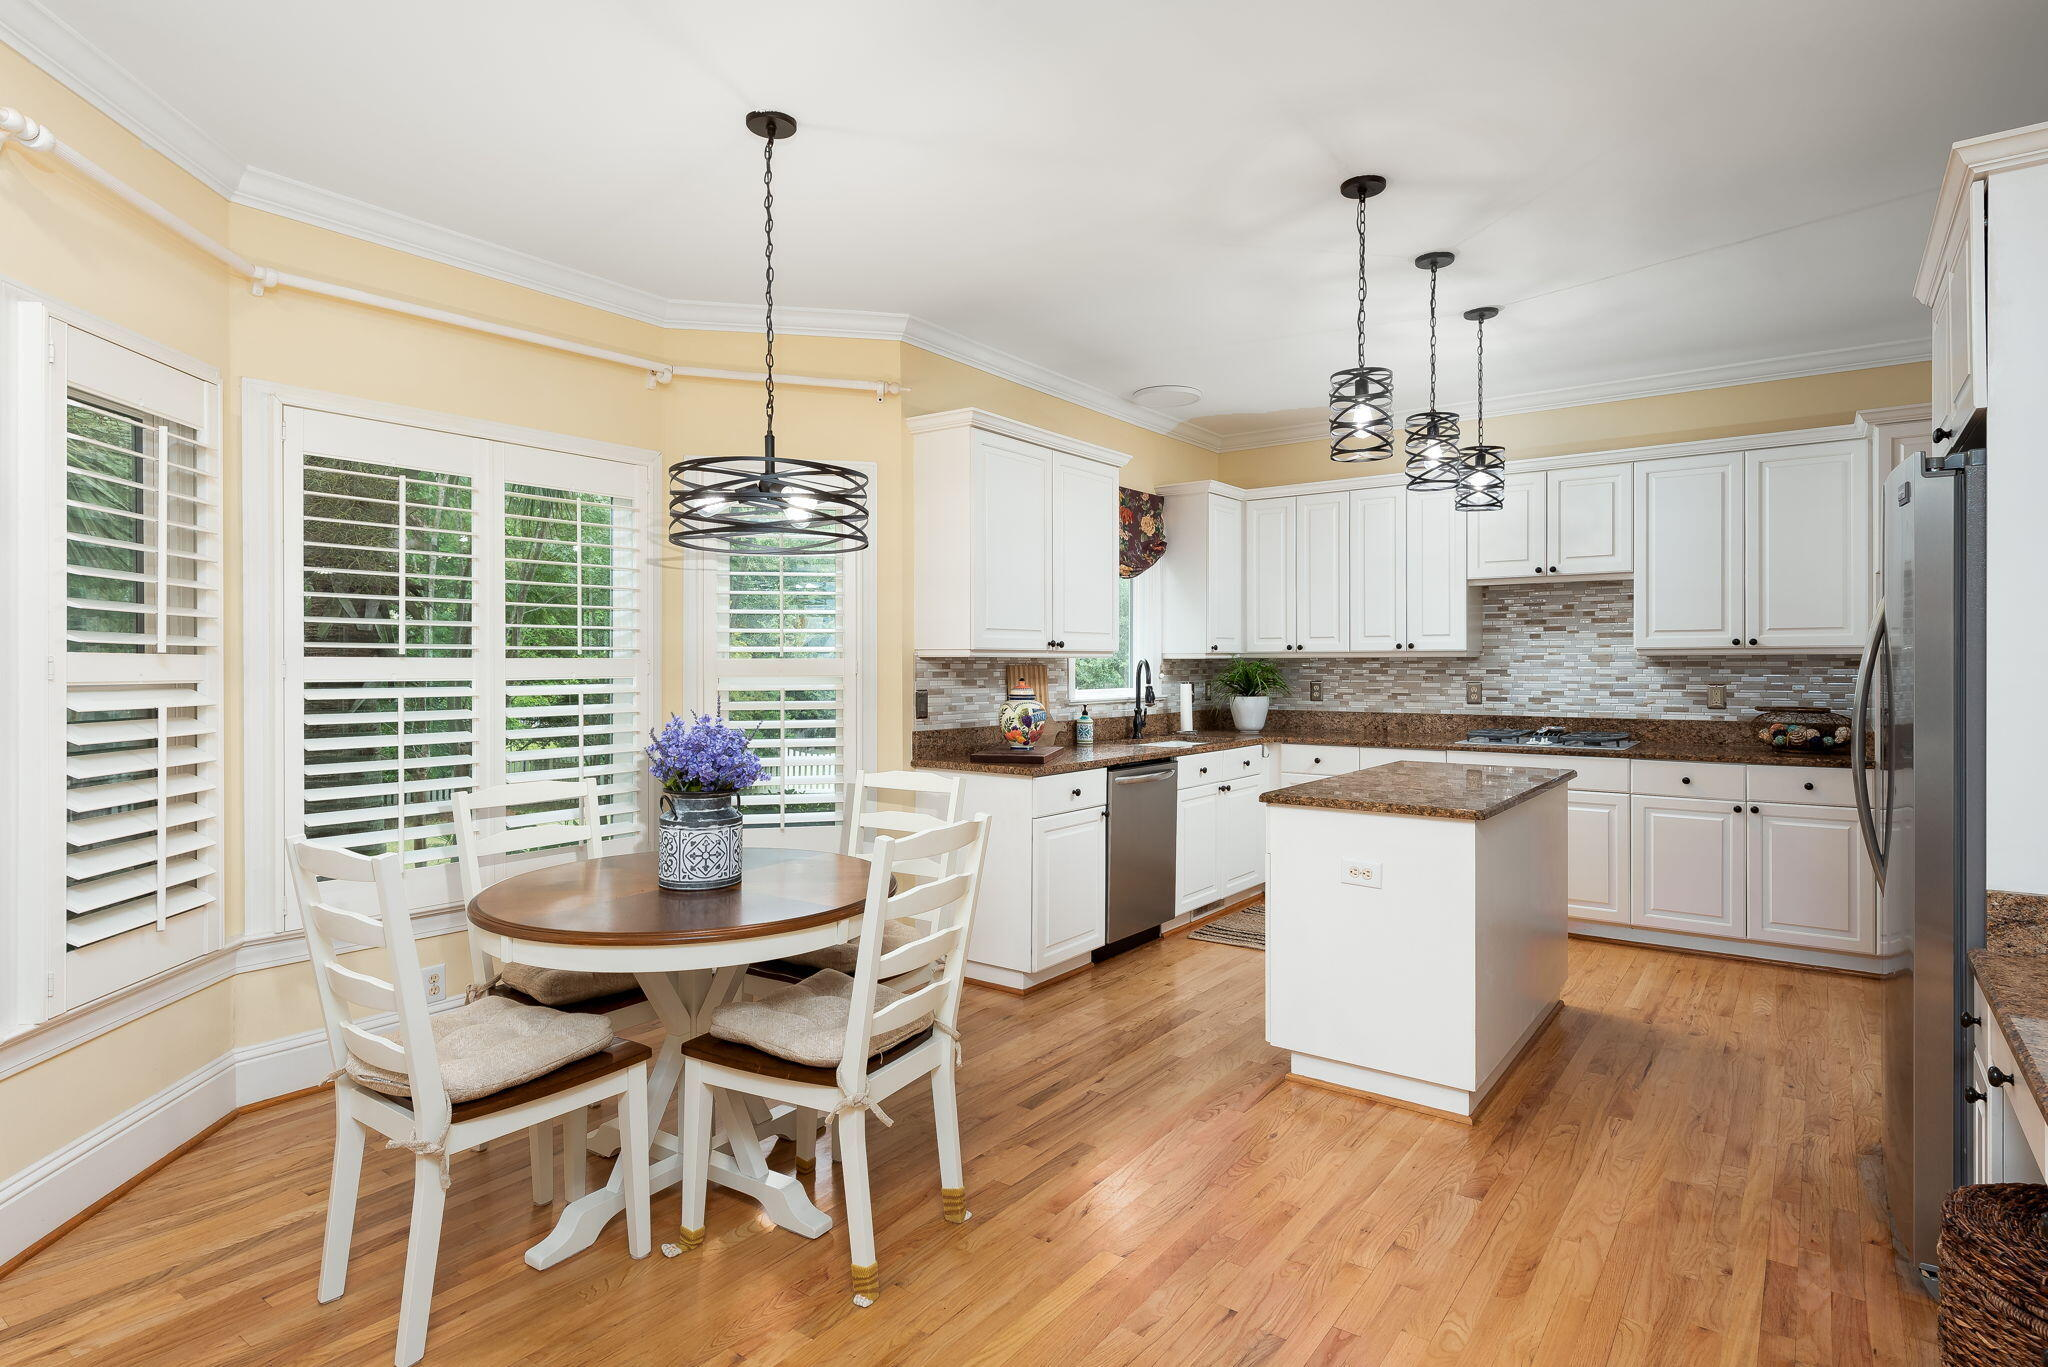 Rivertowne On The Wando Homes For Sale - 2301 Hartfords Bluff, Mount Pleasant, SC - 26